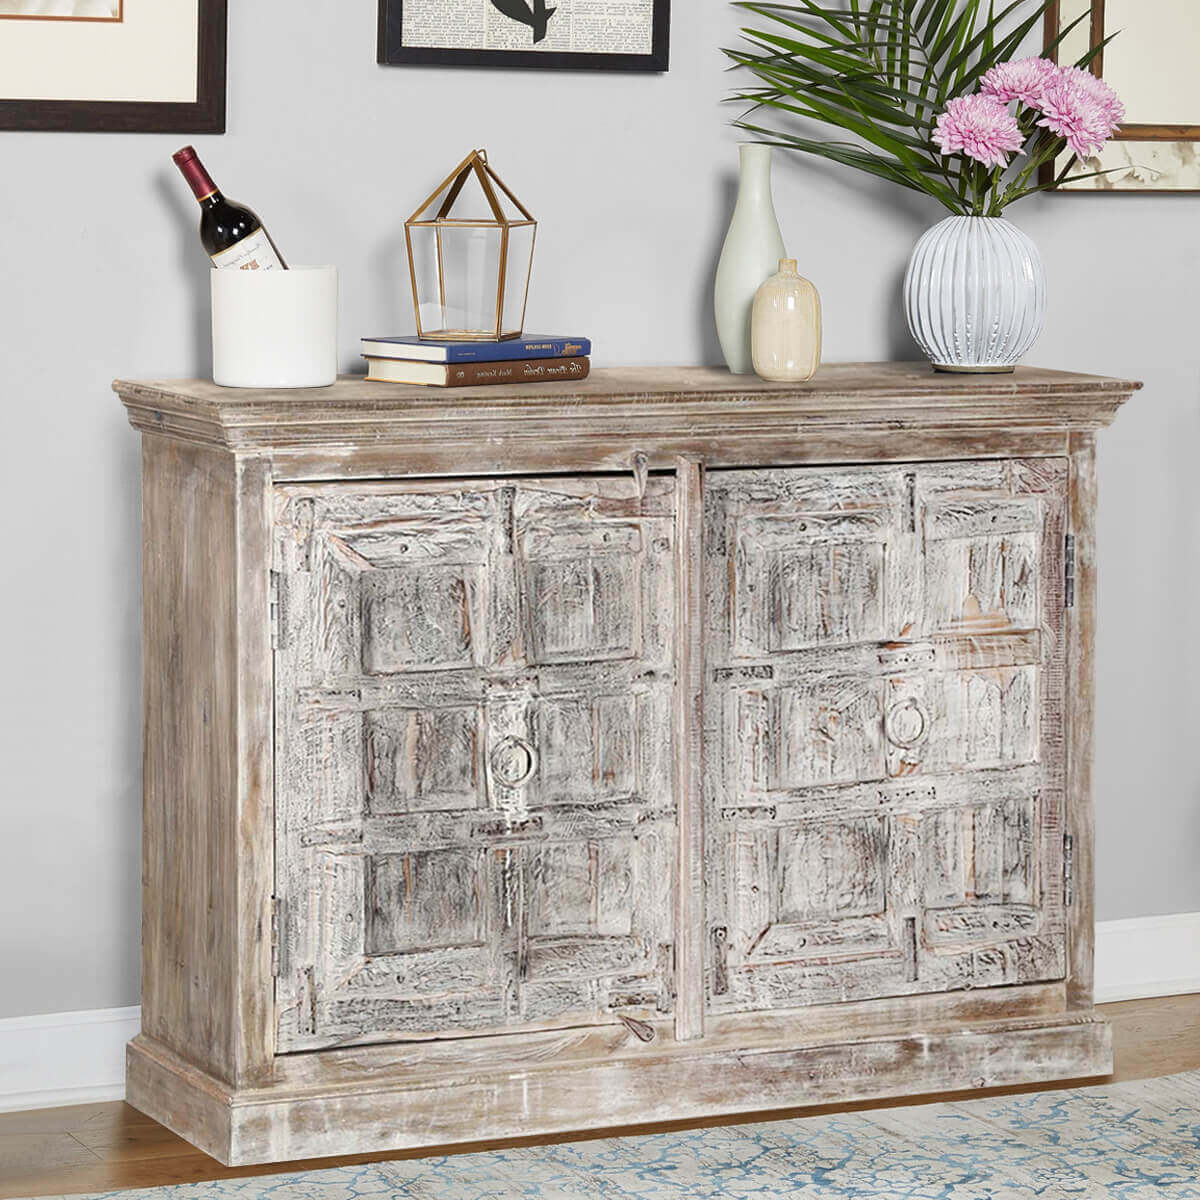 Distressed Wood Buffet ~ Palazzo distressed reclaimed wood rustic dining buffet cabinet